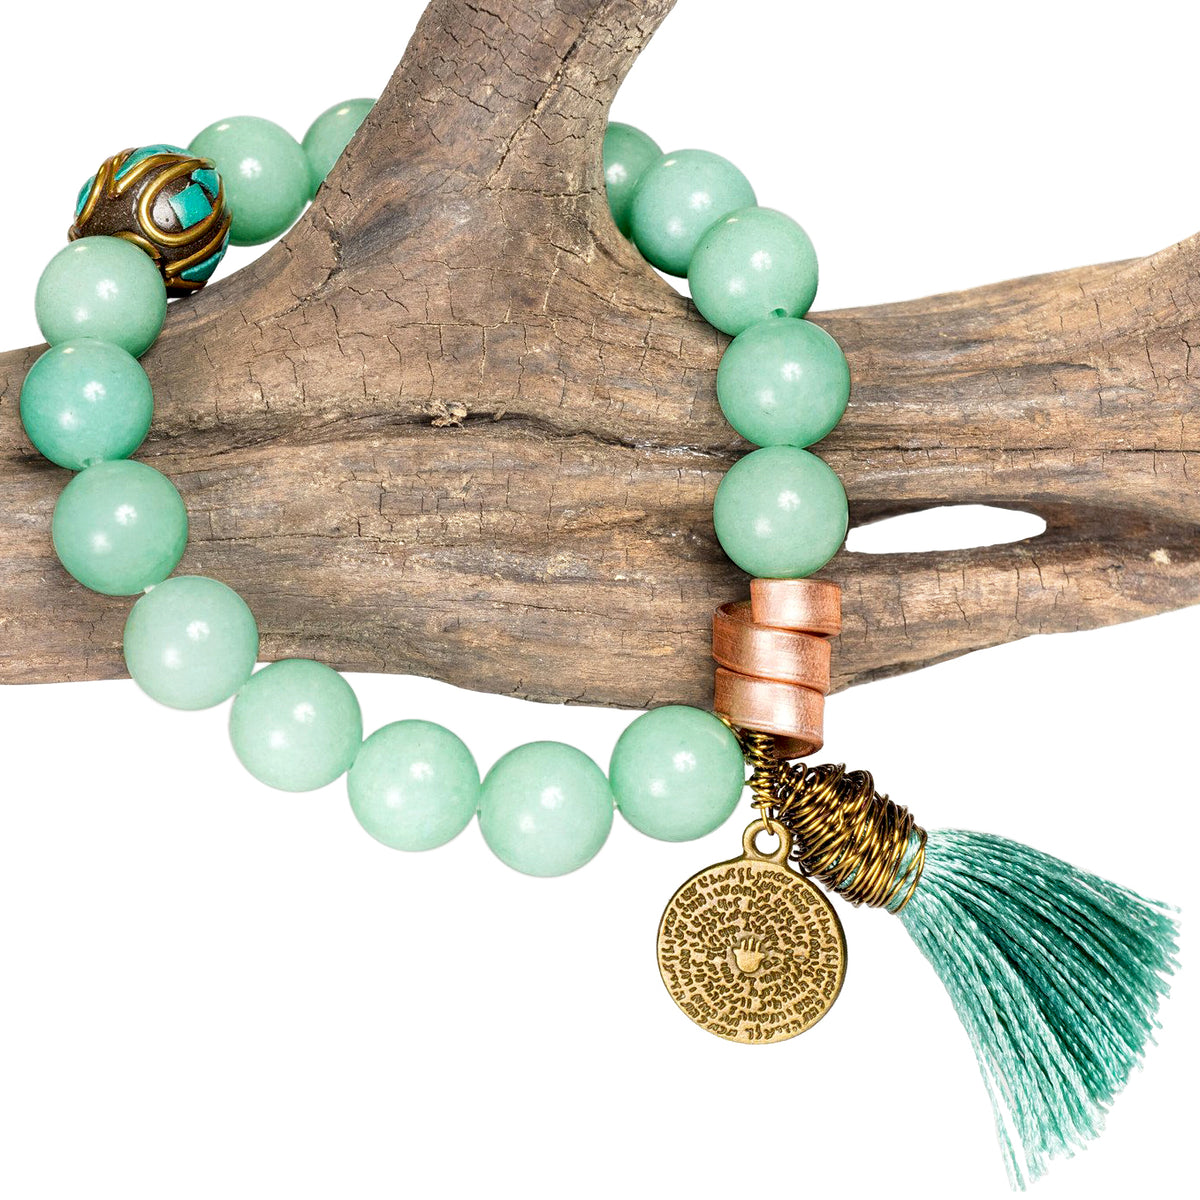 Amazon Stone Healing Mala Bracelet with Copper, Pendant and Blue-Green Tassel